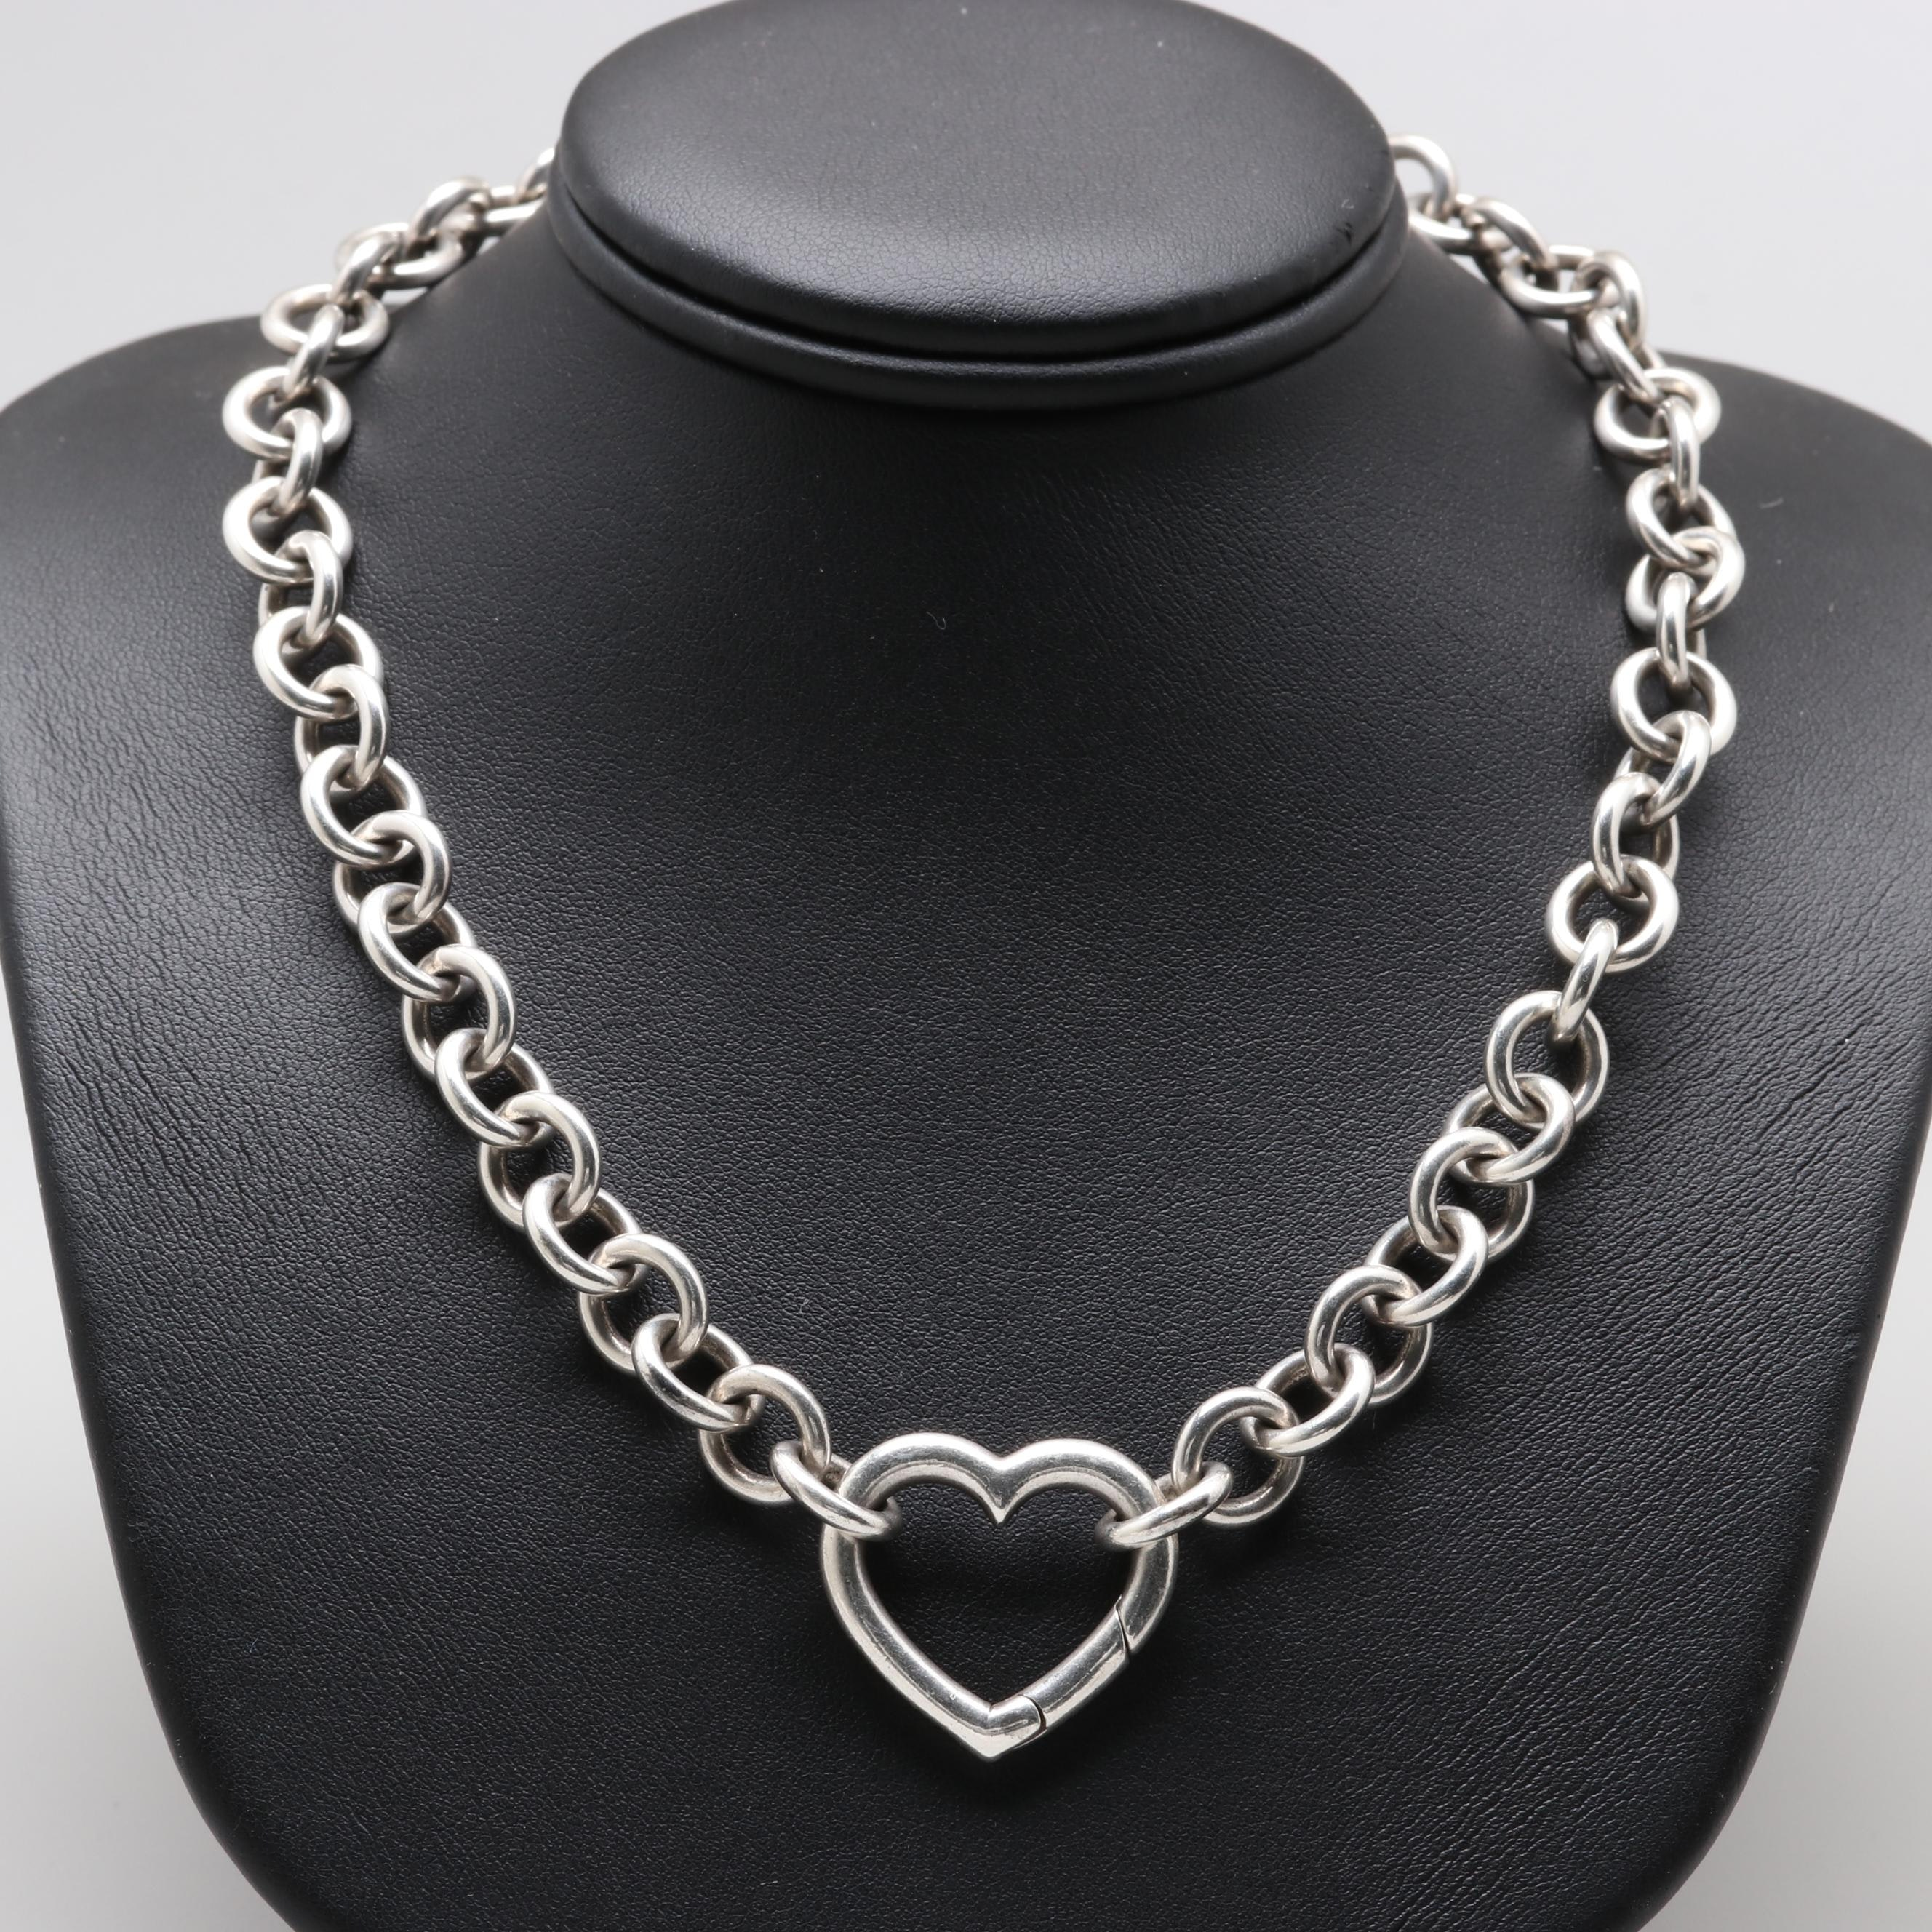 Tiffany & Co Sterling Silver Heart Link Necklace